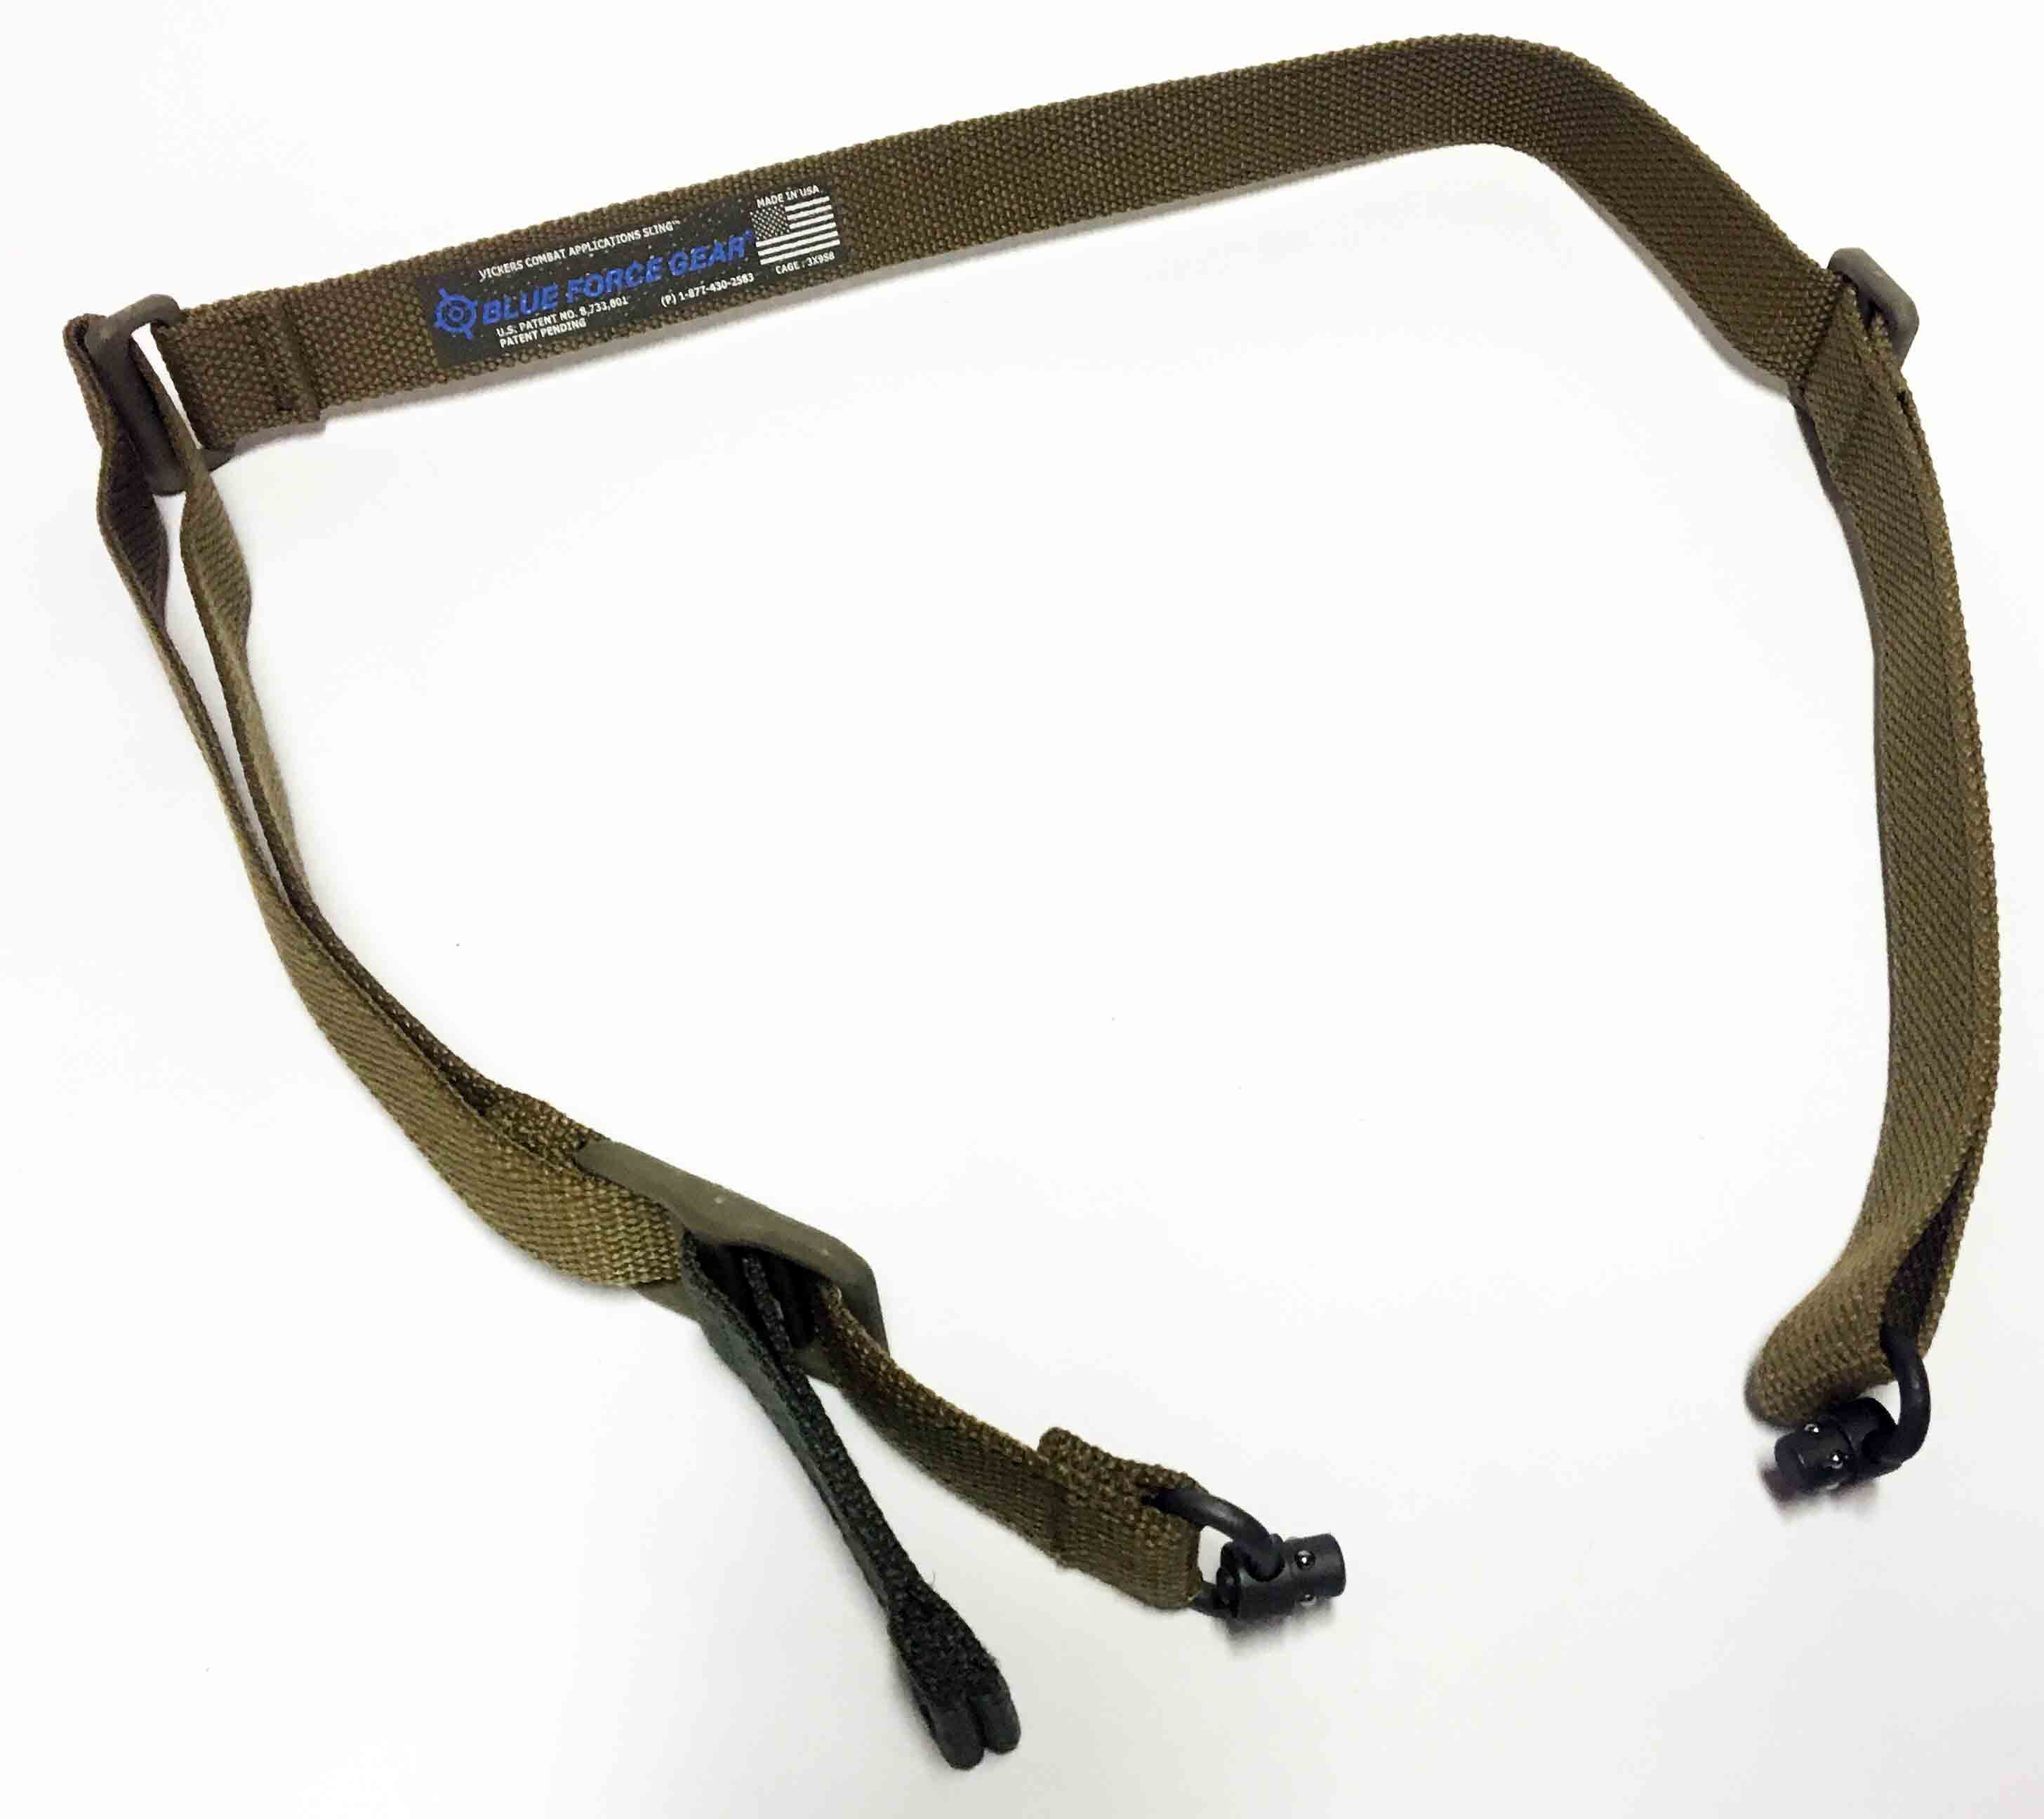 Blue Force Gear Vickers Sling Dual Push Button Molded Nylon hardware Coyote Brown|VCAS-PB-125-AA-CB